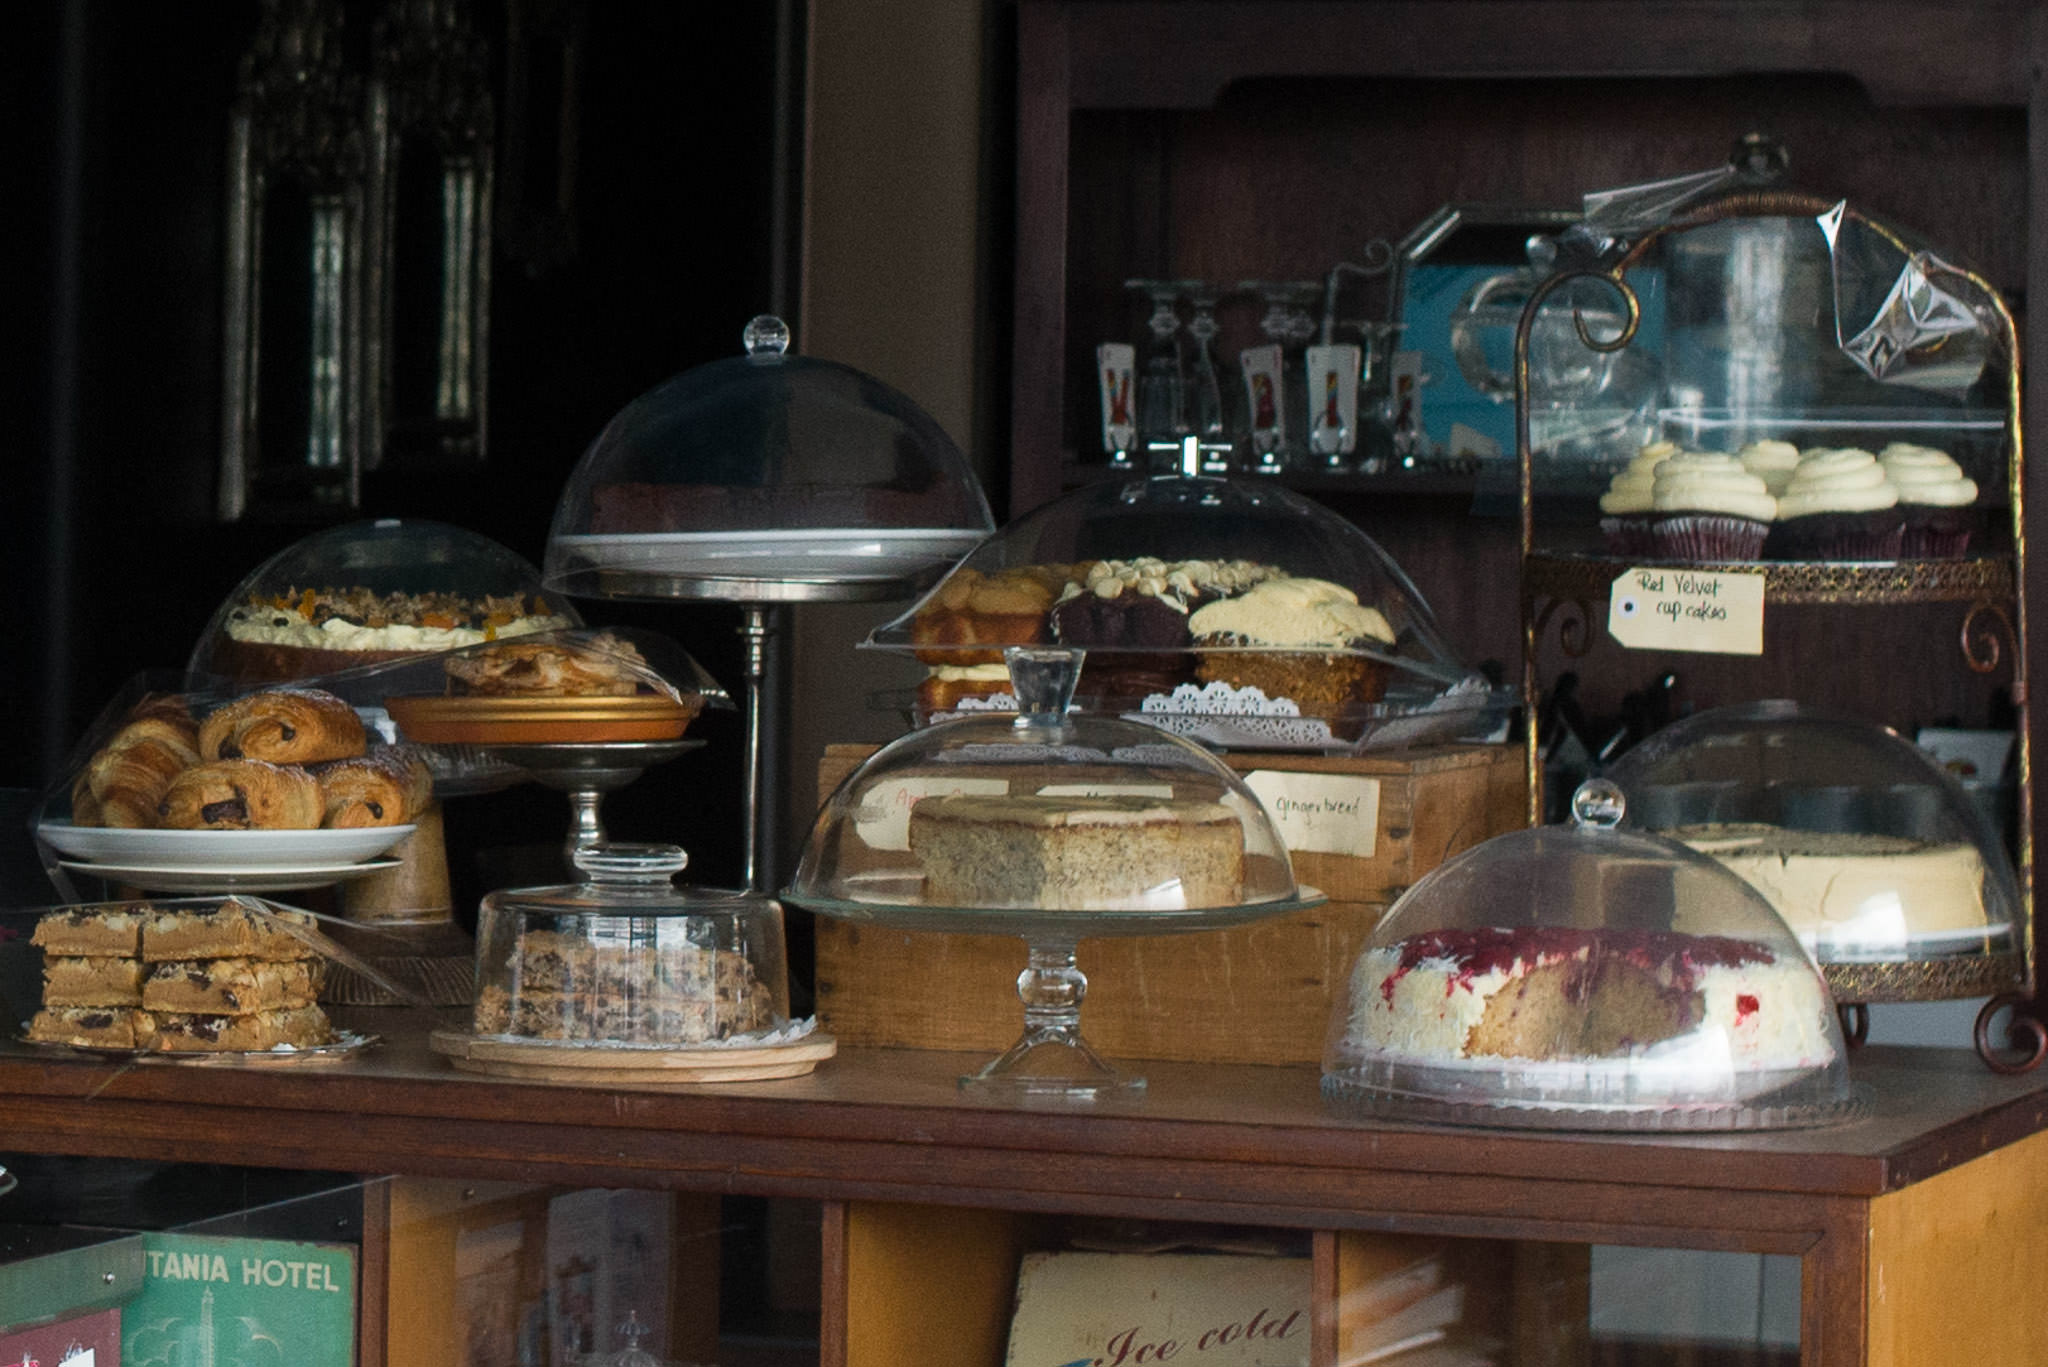 Cakes on the counter